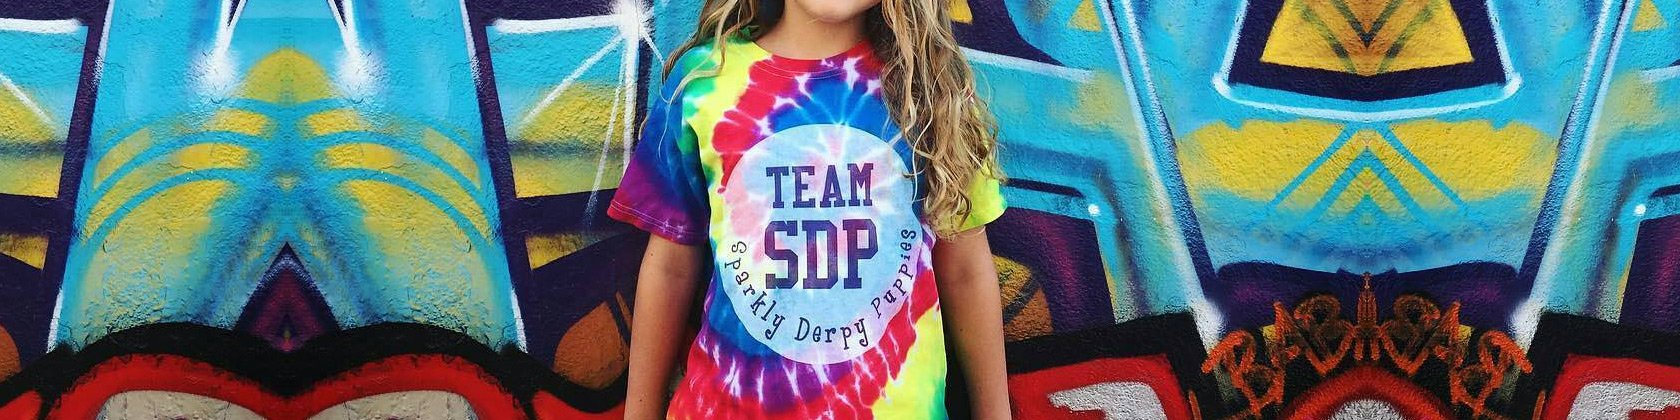 16ab7fb038 Custom Tie Dye Shirts, Personalized Tie Dyed T-Shirts